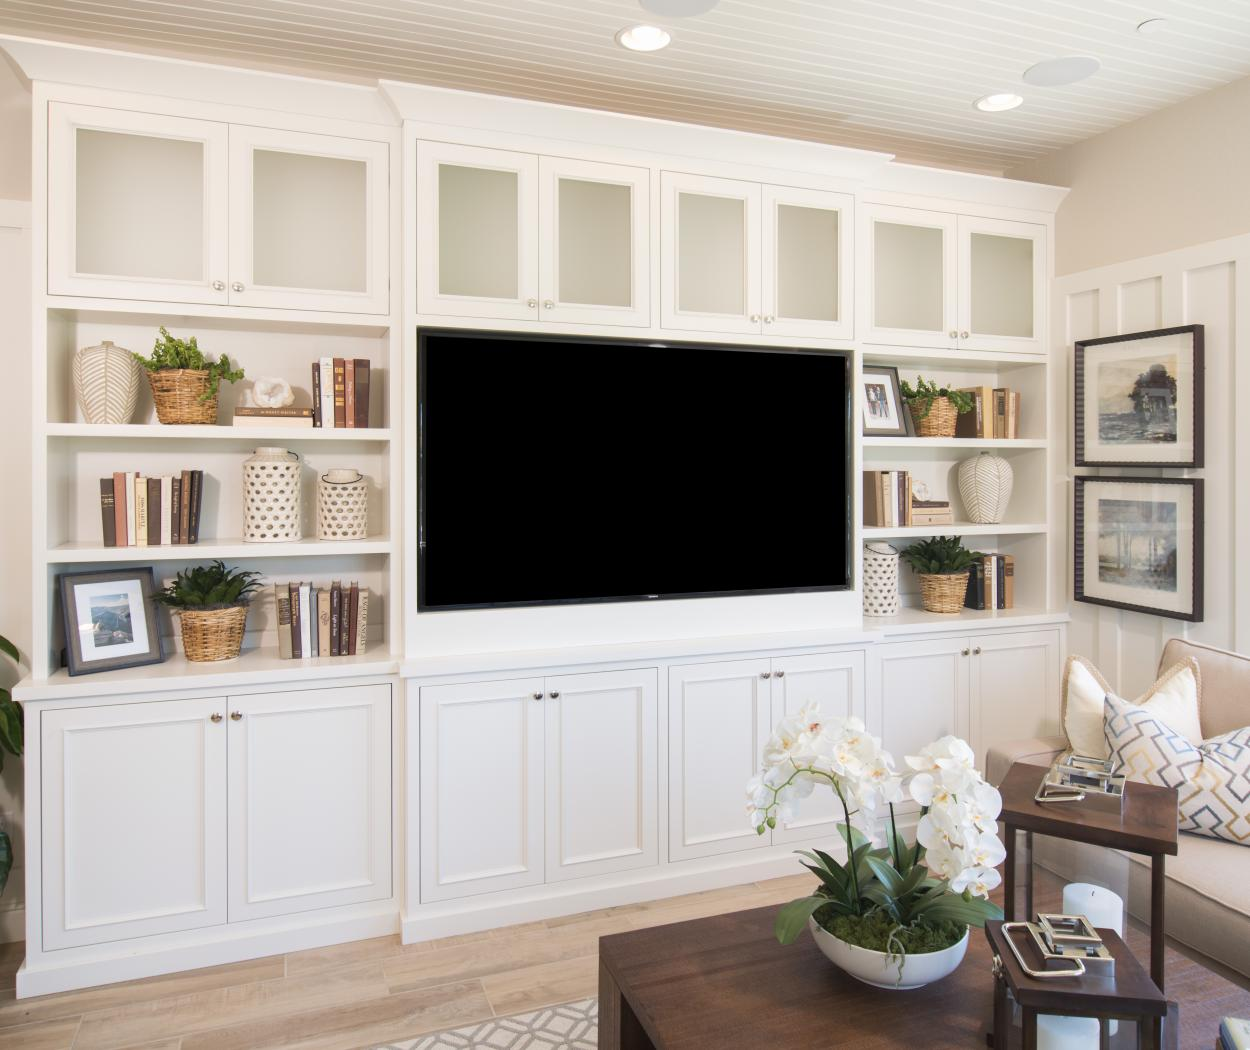 Beautiful White Entertainment Center with Glass Doors, Open Shelves and Silver Knobs - Pulls